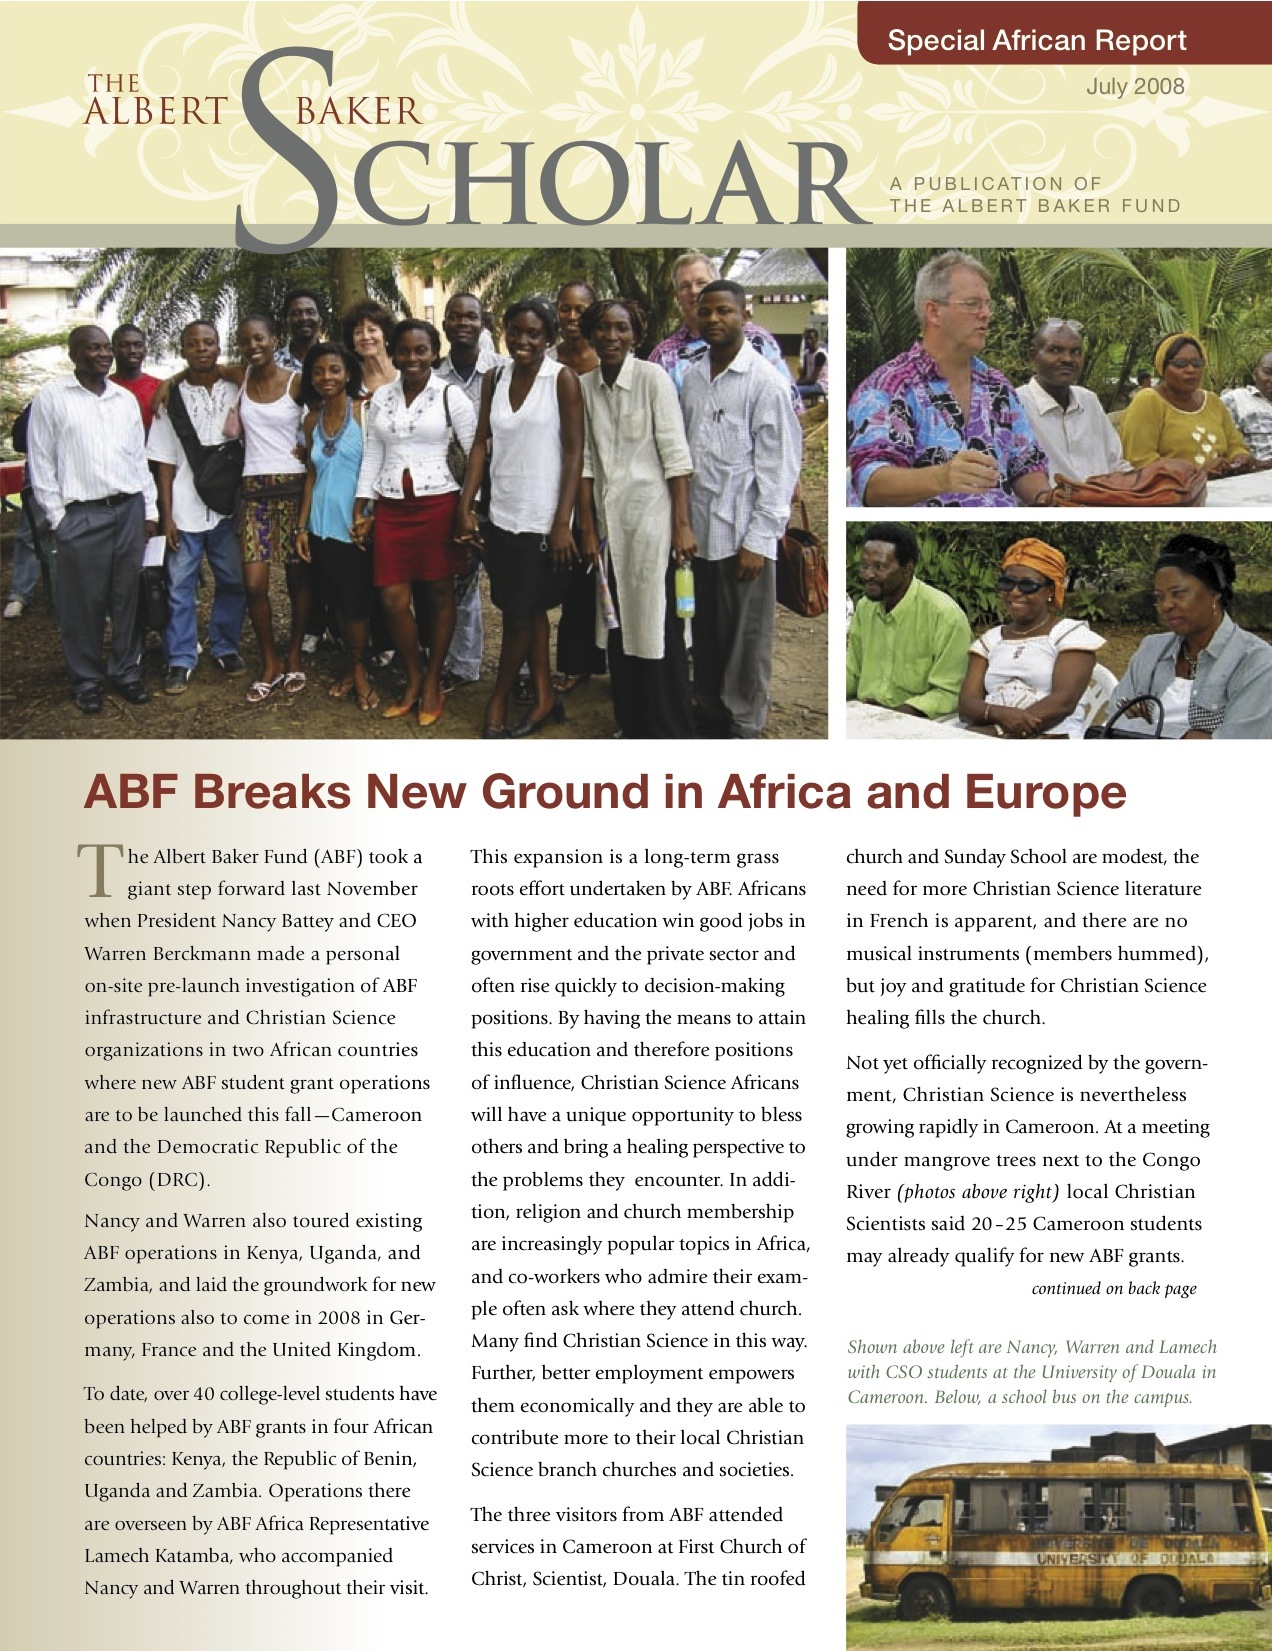 The Albert Baker Scholar Newsletter - July 2008 Special African Report